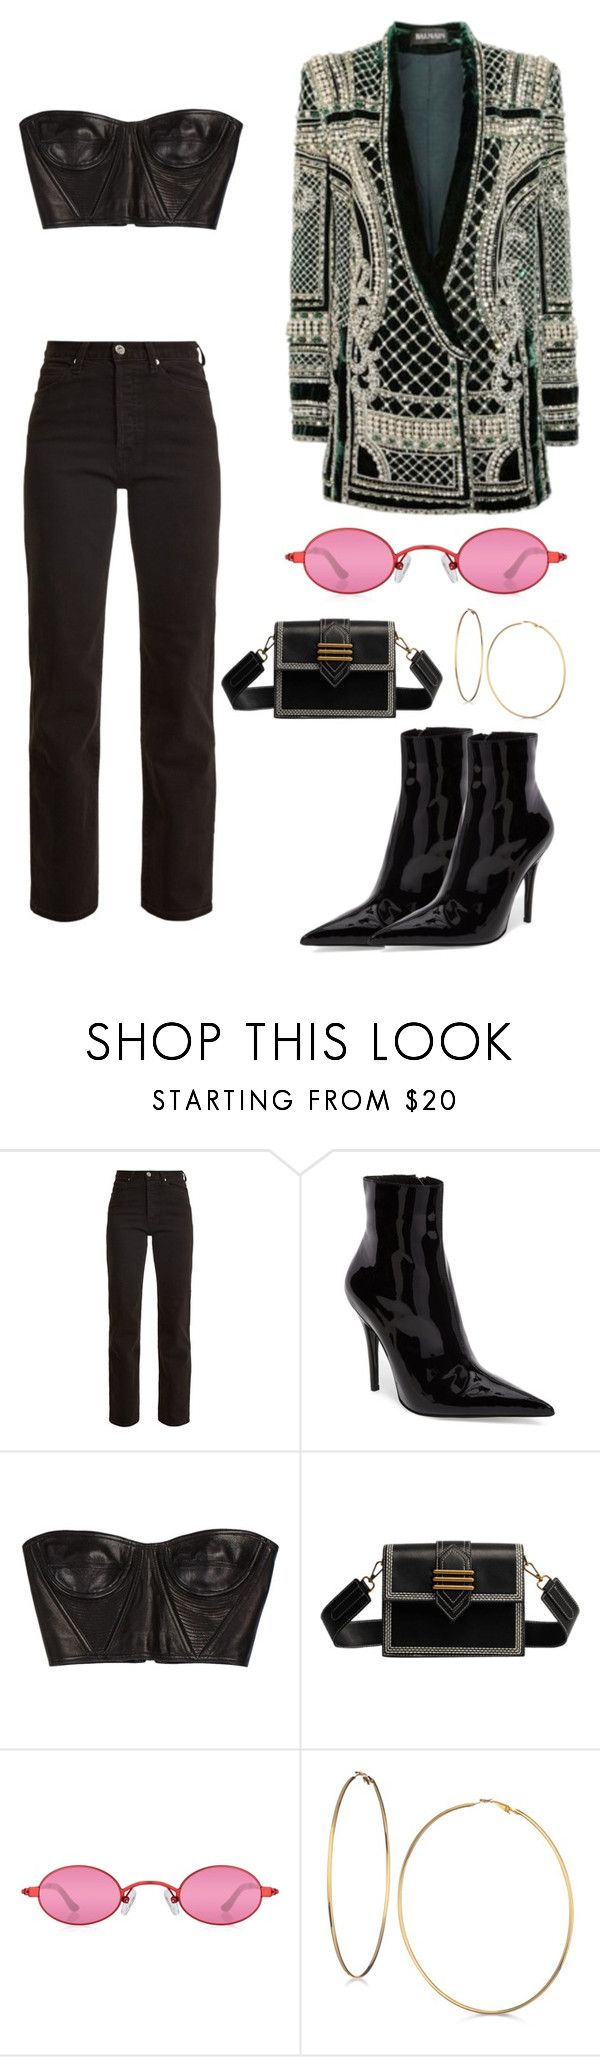 """Untitled #2452"" by dani-gracik on Polyvore featuring Eve Denim, Jeffrey Campbell, Balmain and GUESS"